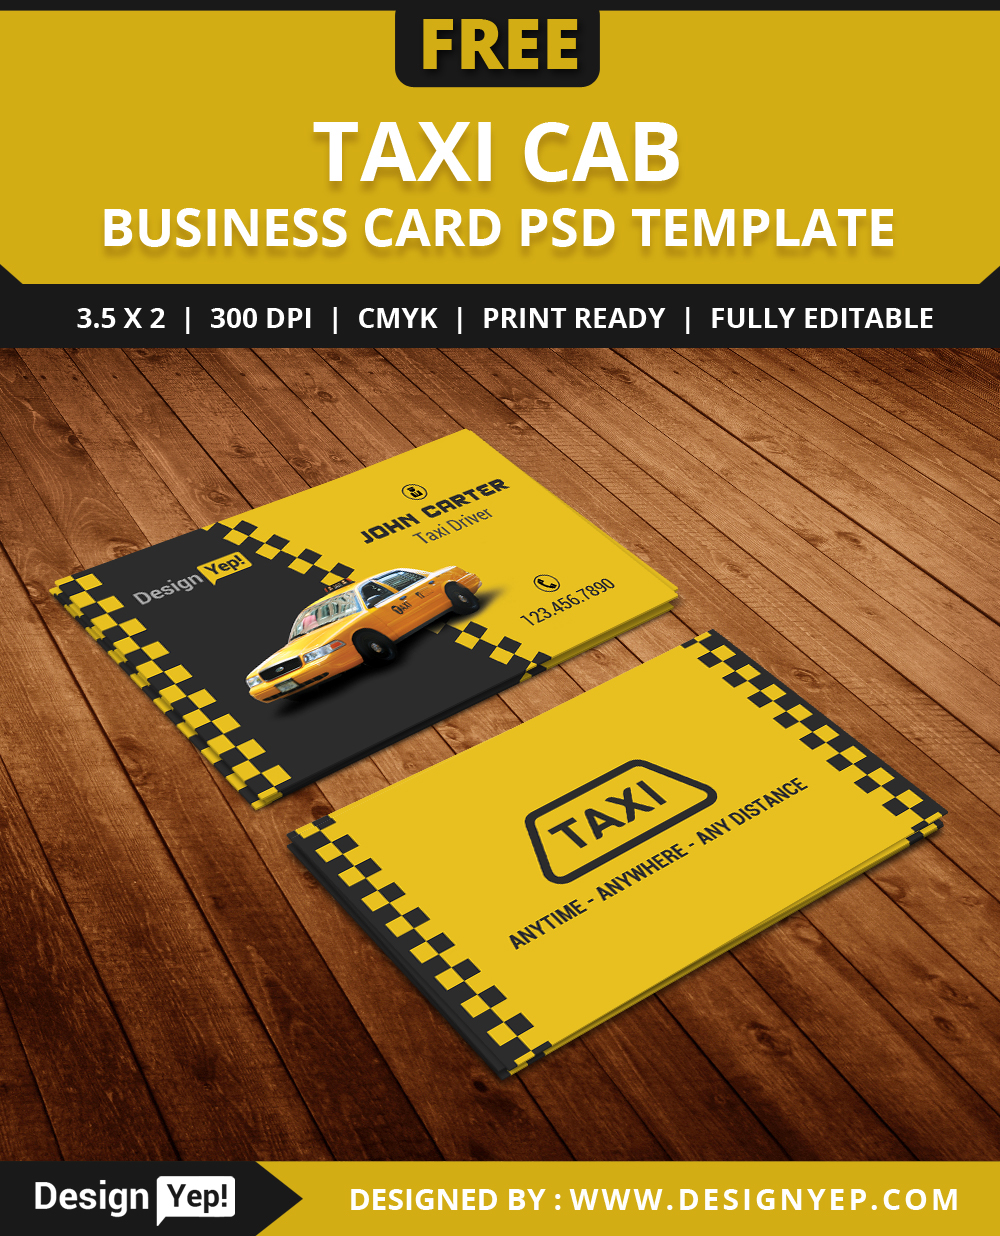 Free Taxi Cab Business Card Template Psd On Behance